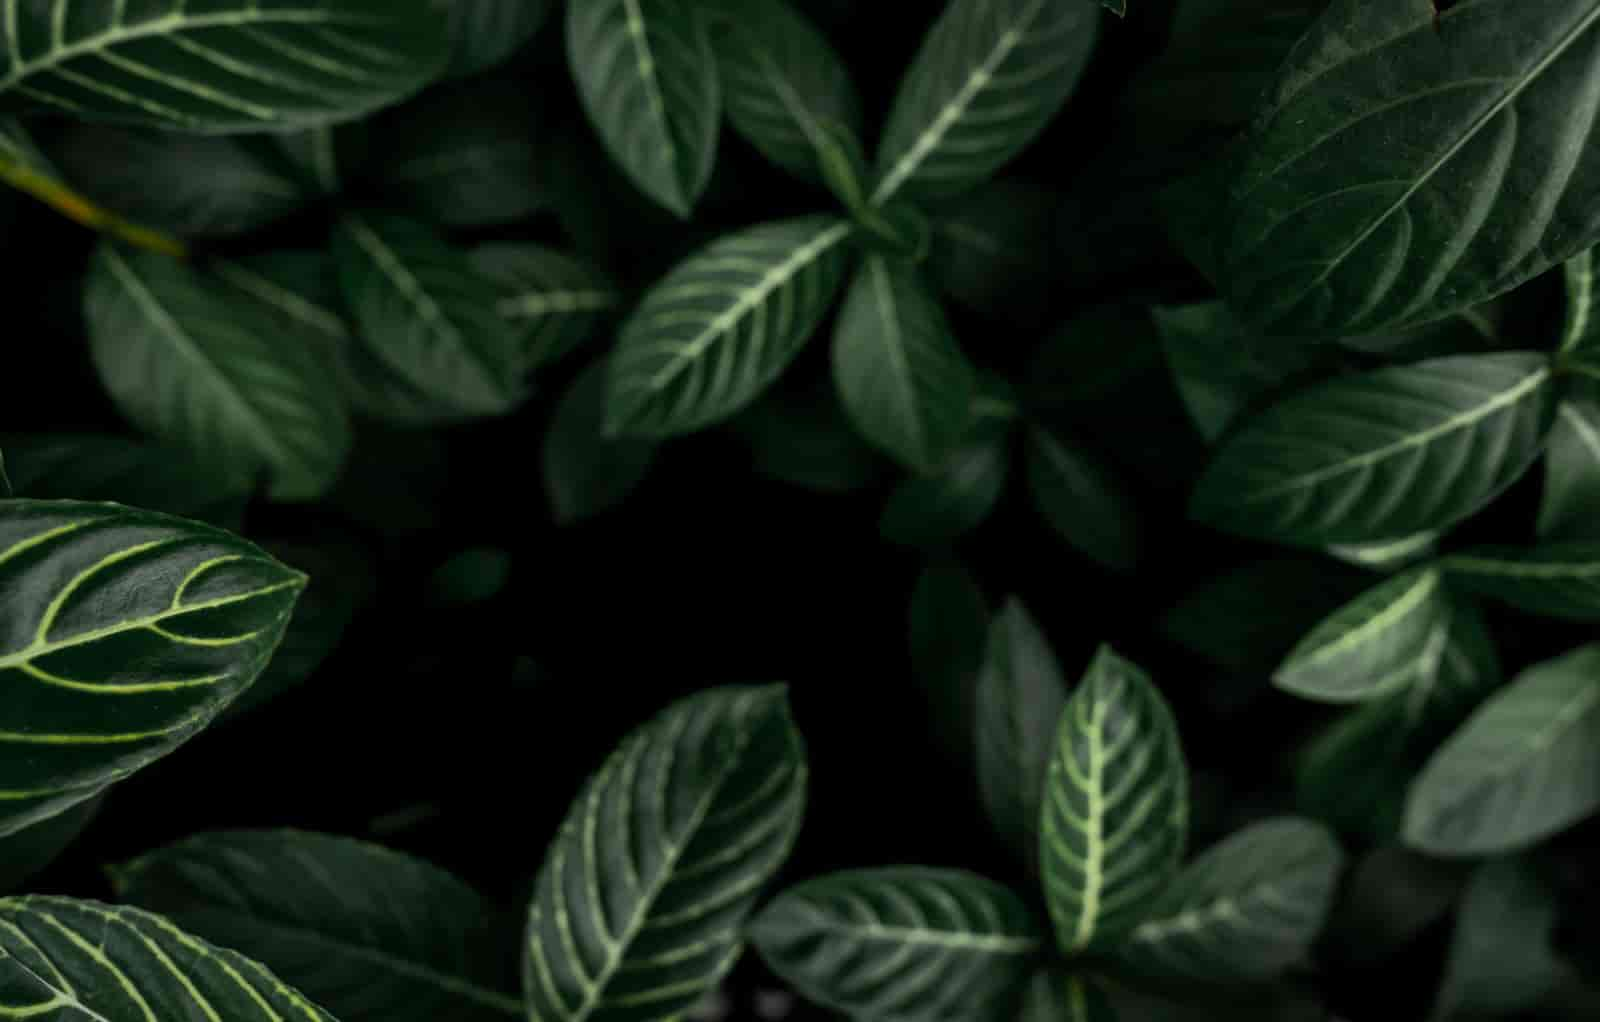 Plants That Grow In Complete Darkness